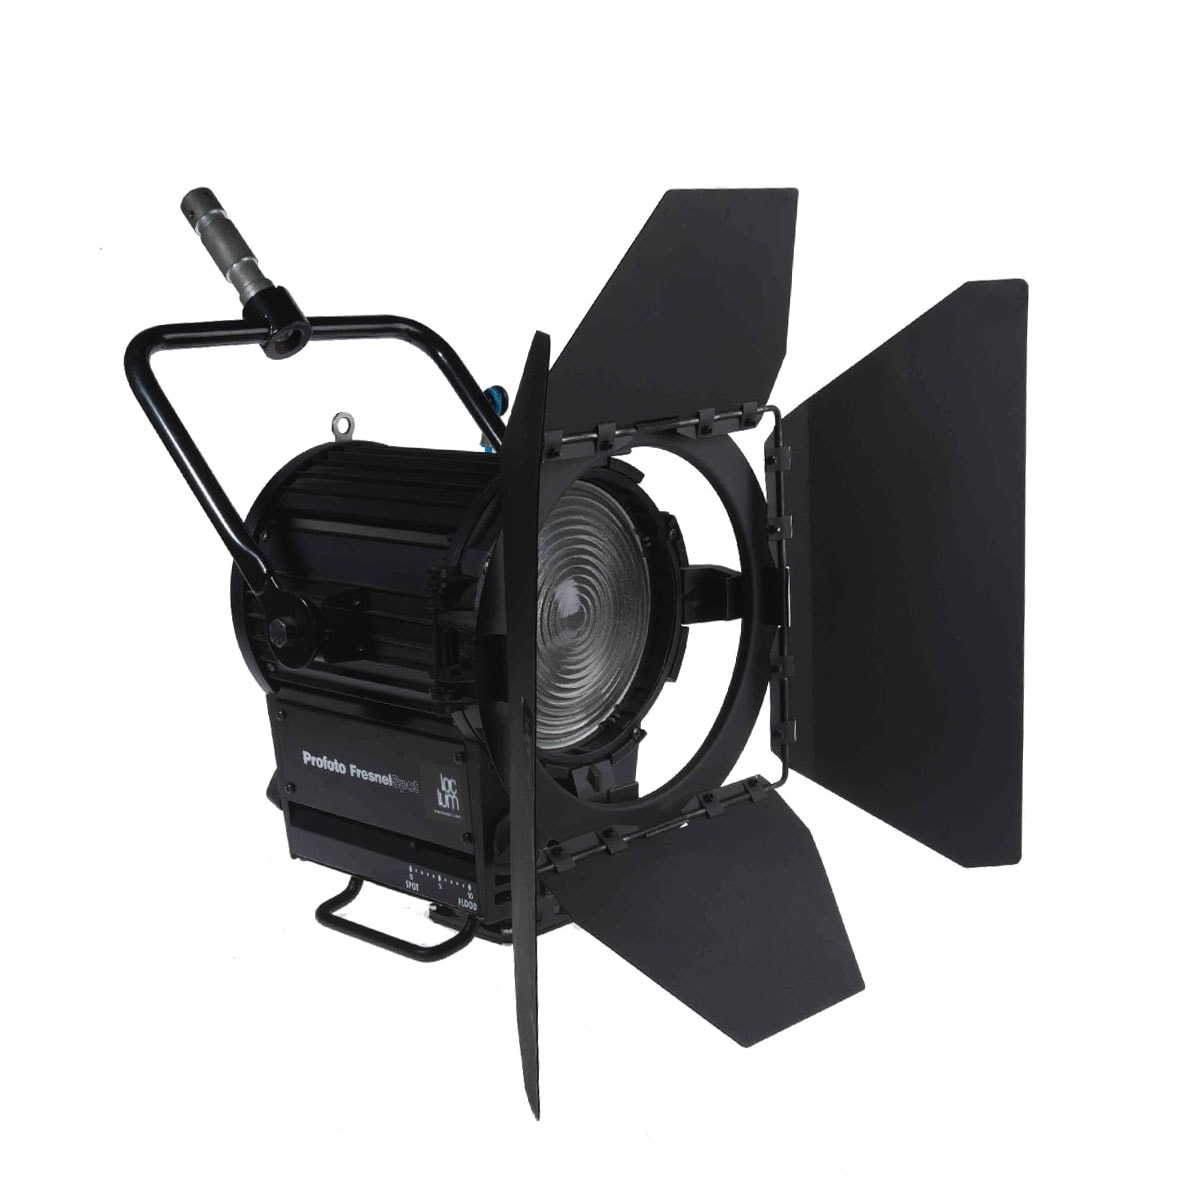 Profoto Flash Heads